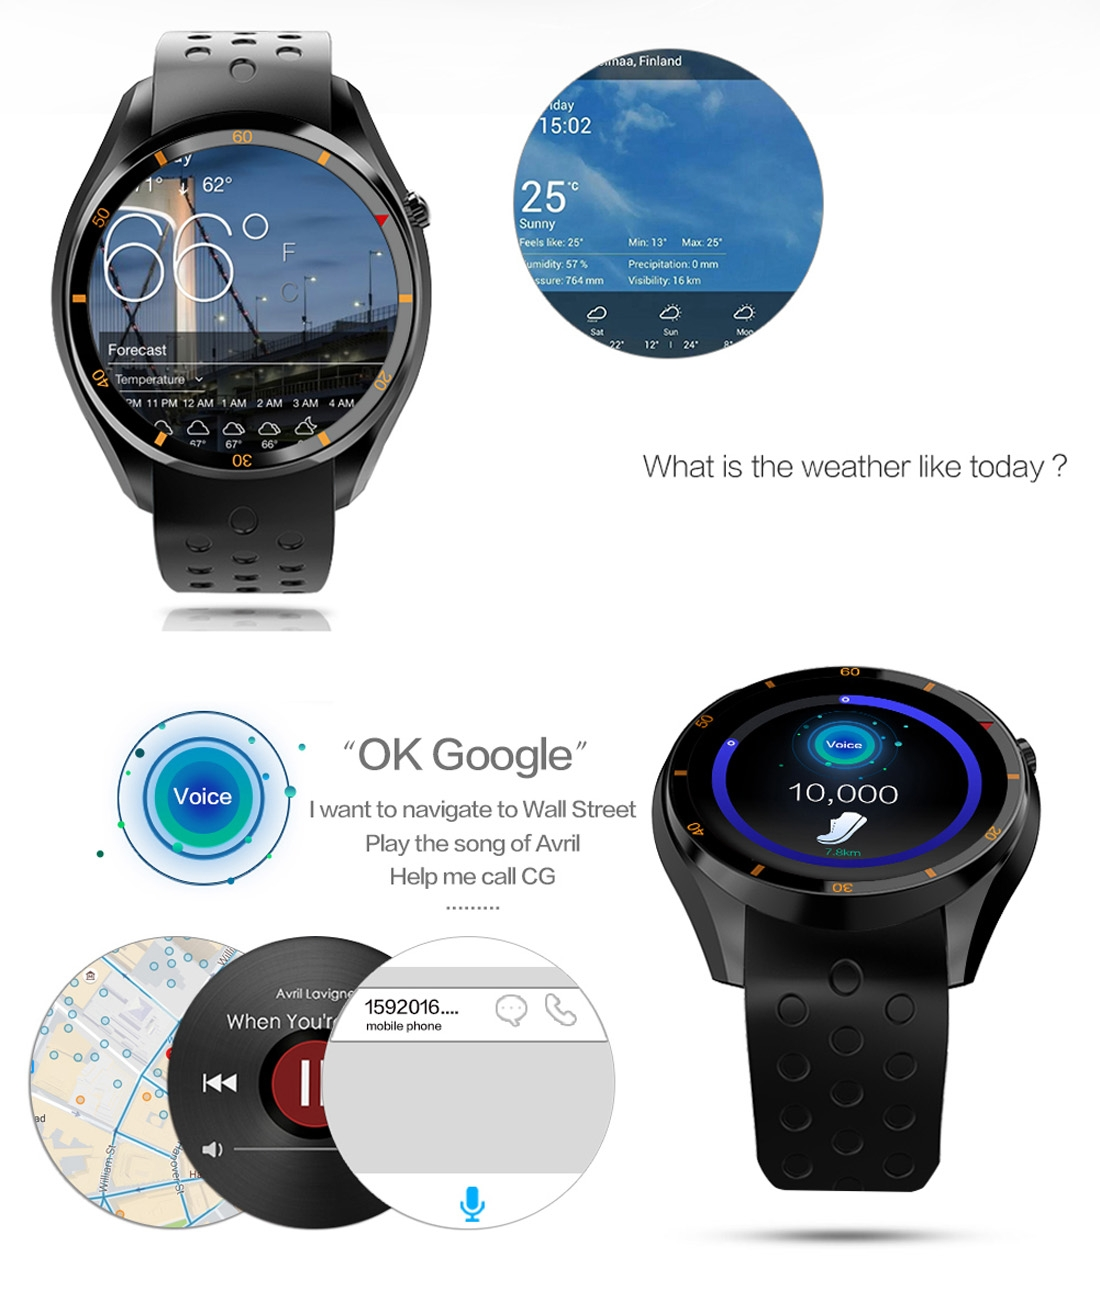 2018 neue Ankunft I3 Smart Watch Phone 512 MB + 8 GB 1,39 zoll AMOLED Android 5.1 3G Netzwerk mit Silikonband